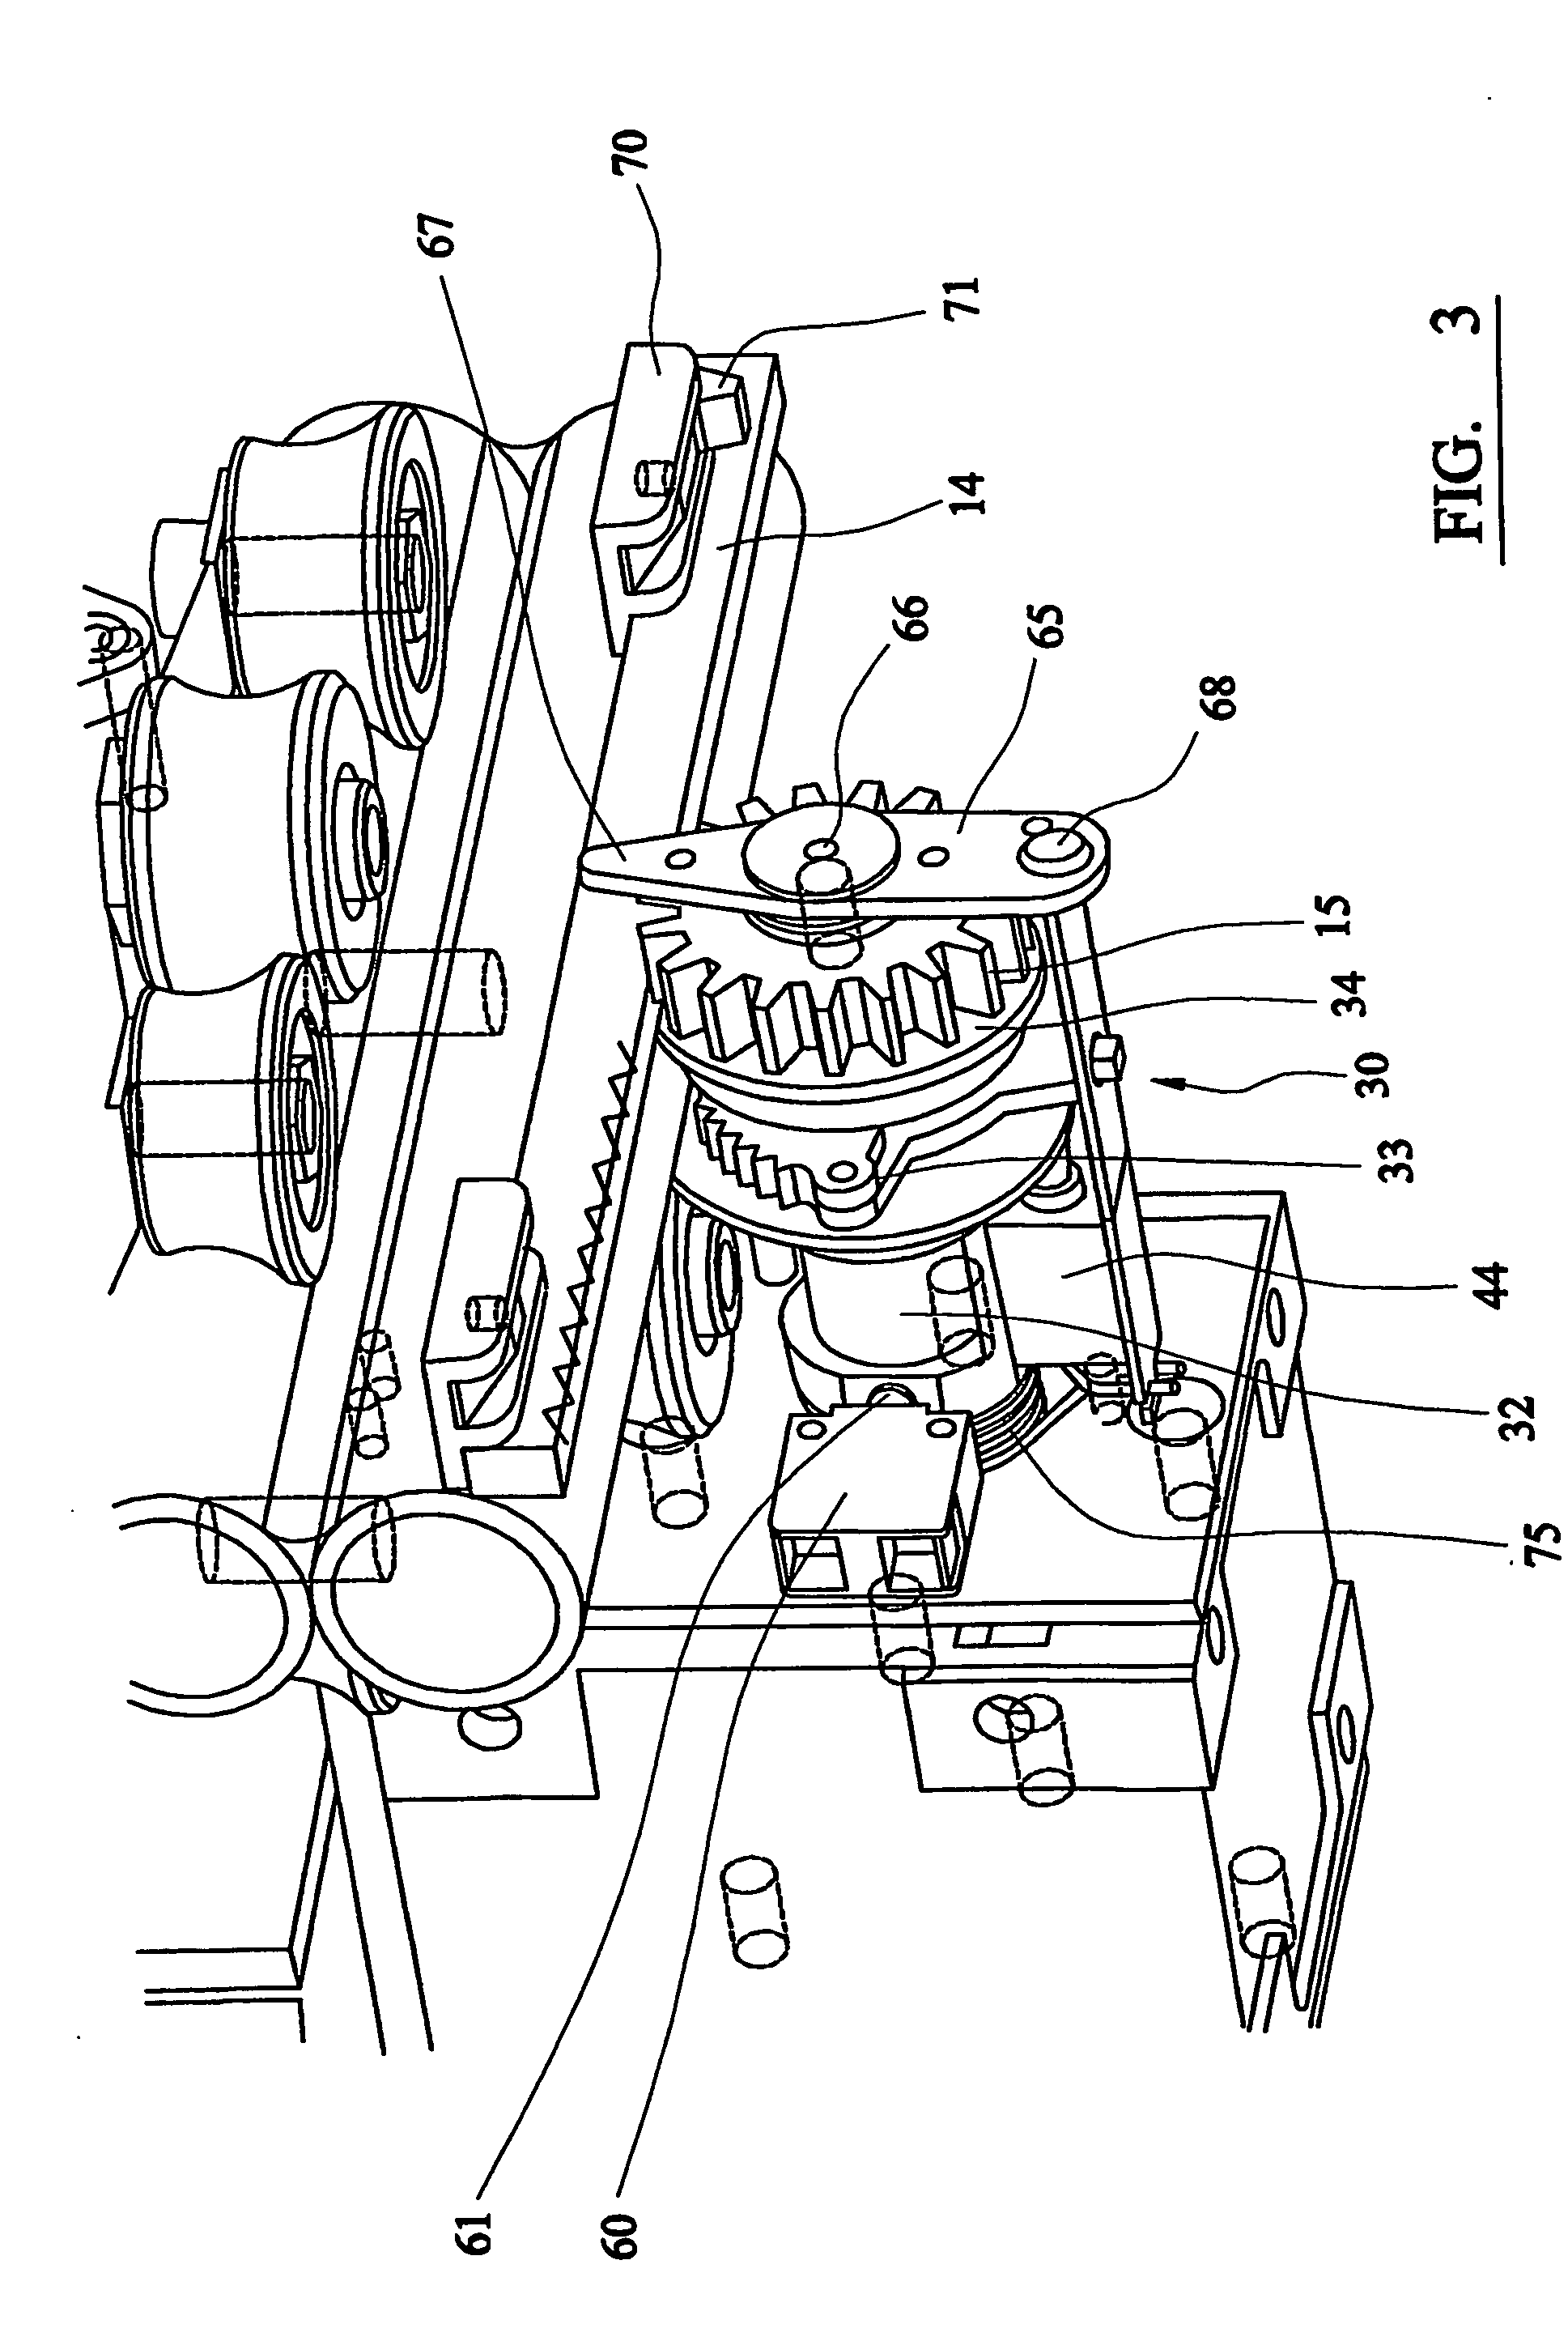 patent us8087495 - safety device for stairlifts